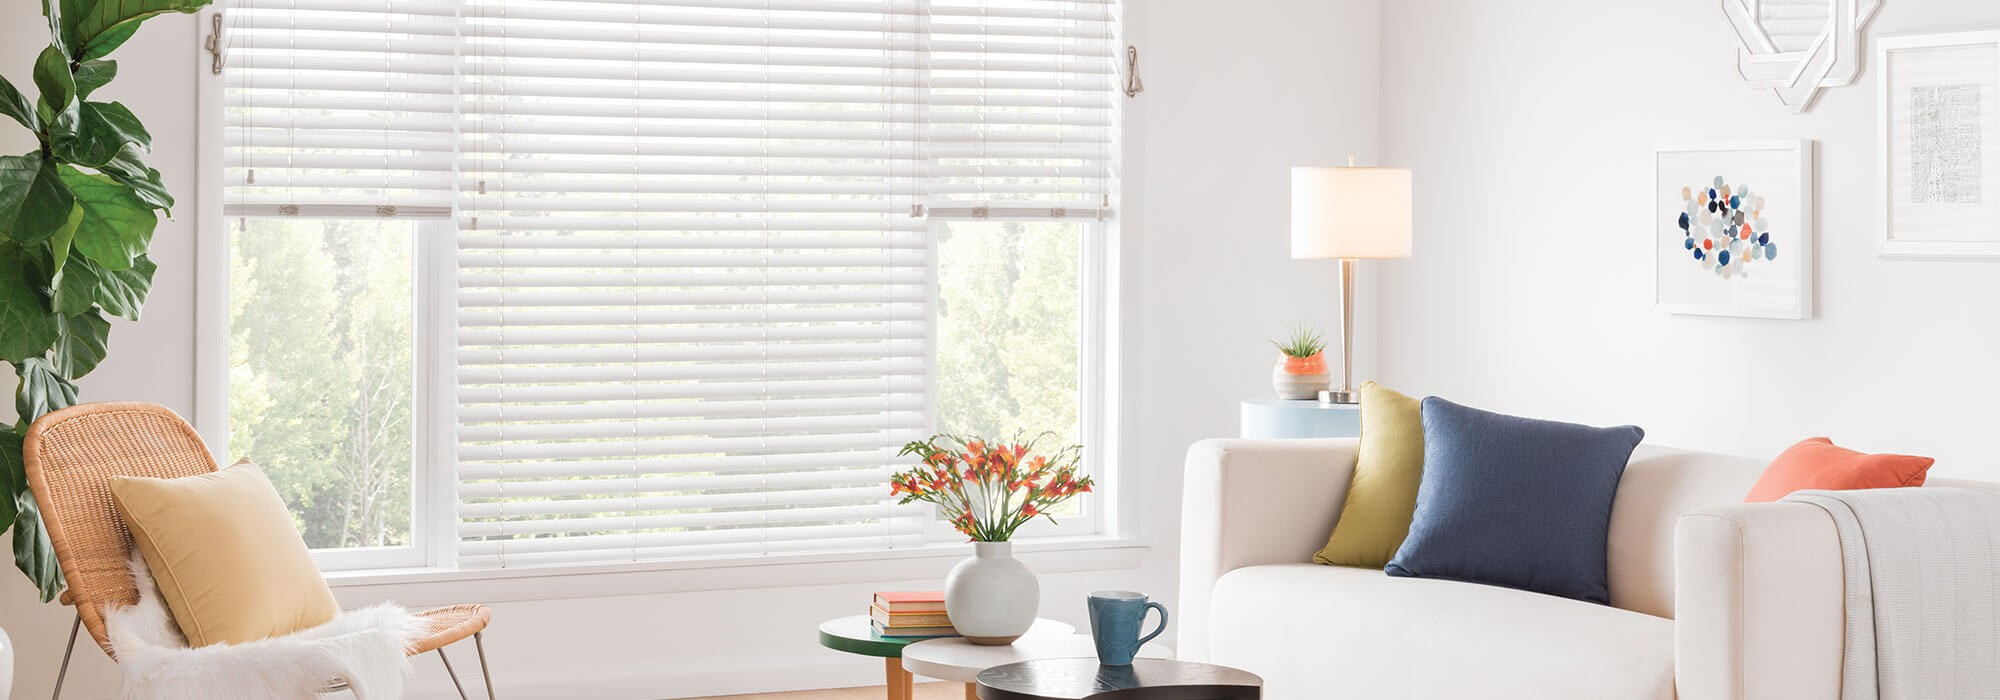 Pink Blinds For Windows